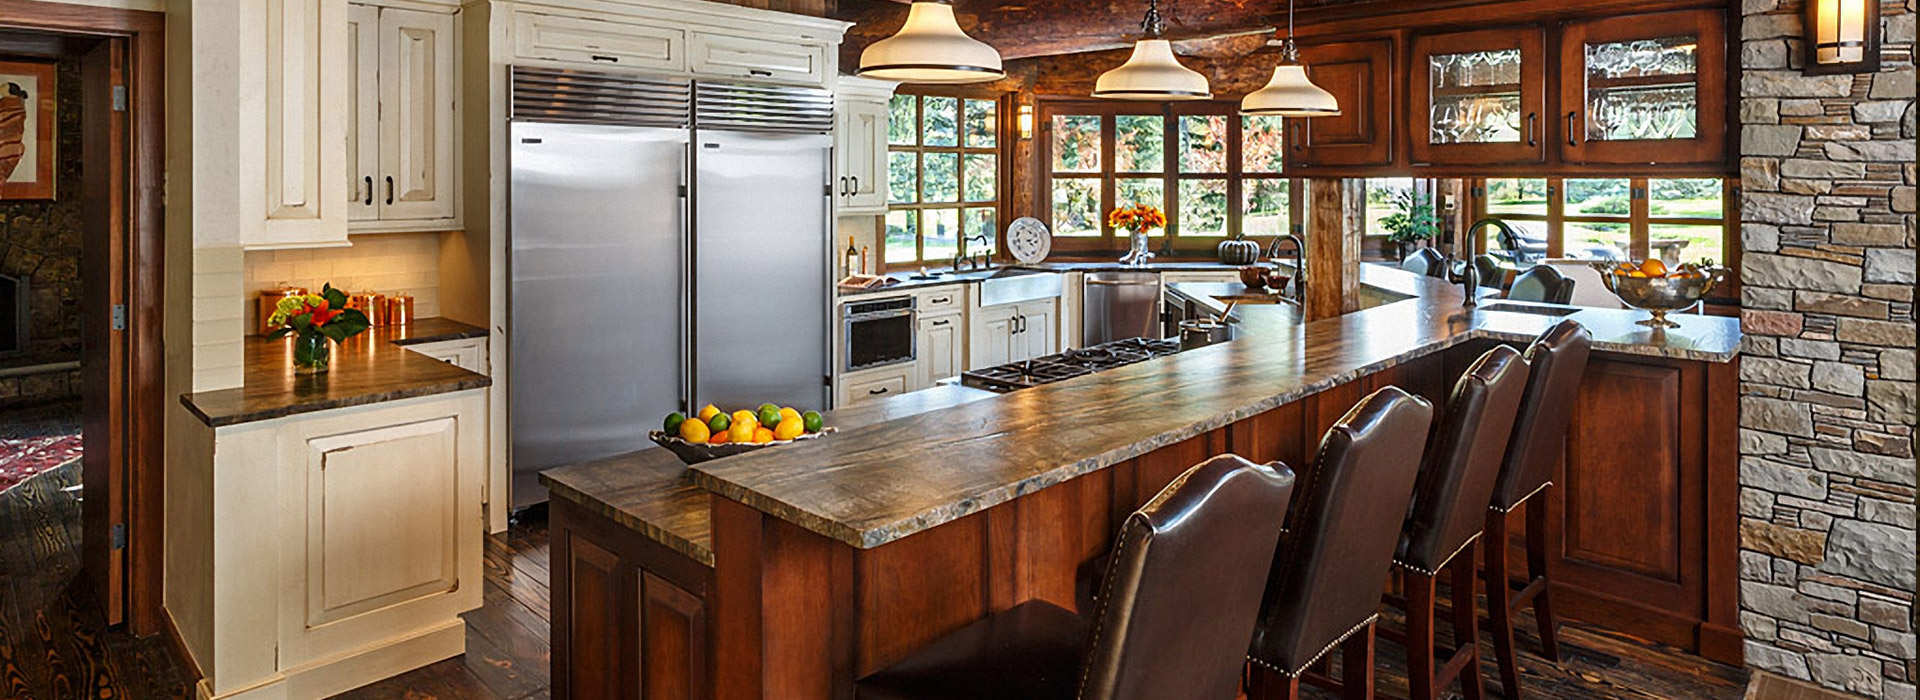 100 Ranch Kitchen Design Kitchen Ideas With Black Granite Countertops Outofhome 25 Rustic